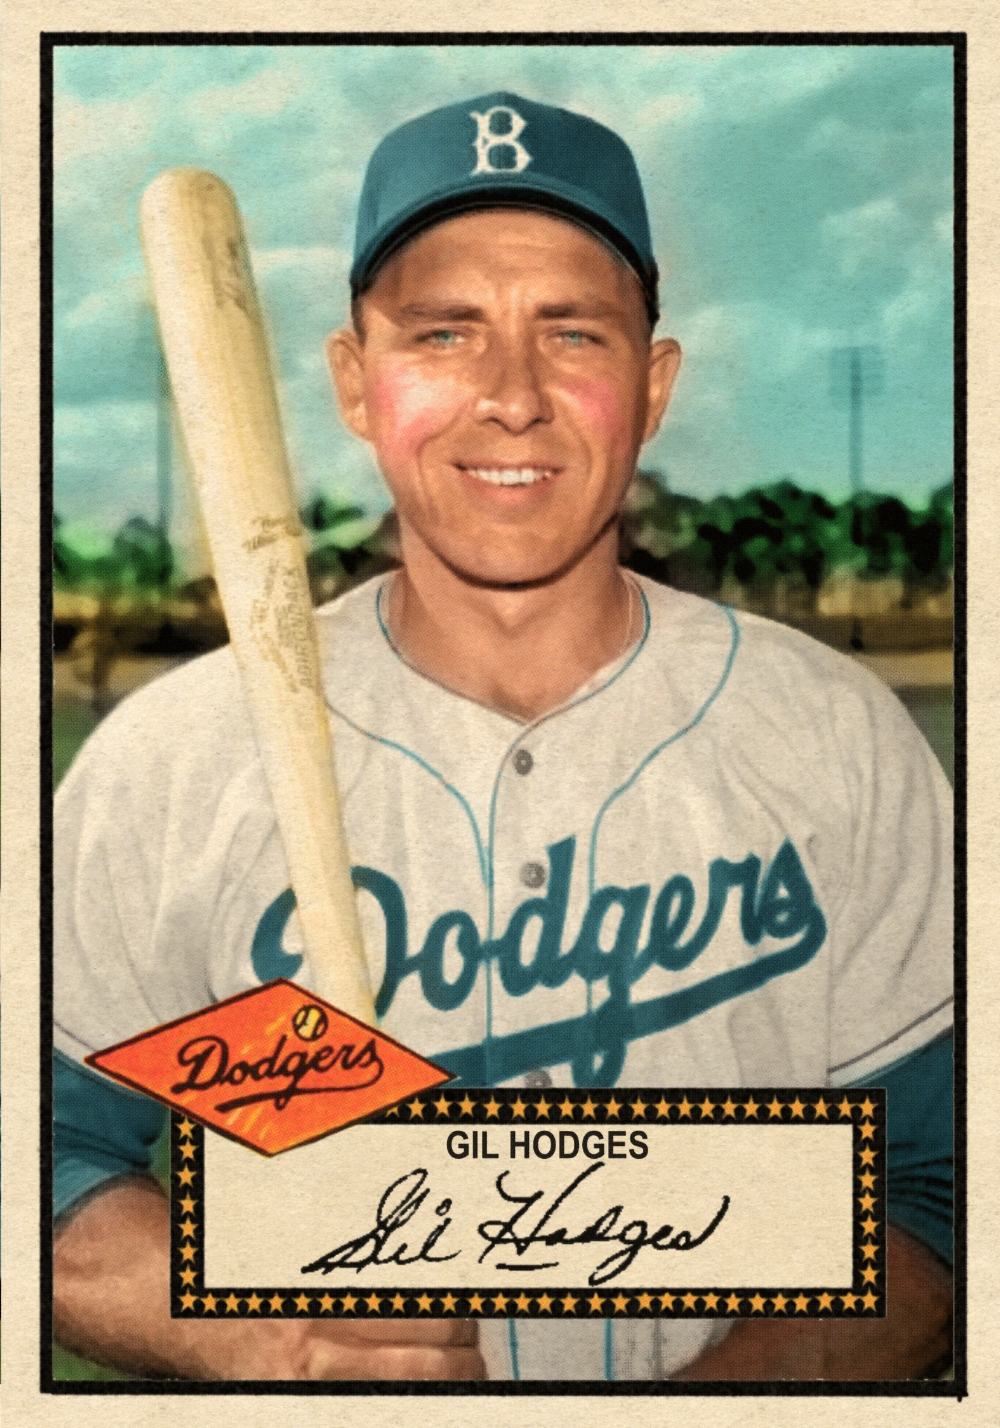 1952 BANTY RED BASEBALL STARS SERIES #7 GIL HODGES - 04/10/17 Auction Closes at 156.35 USD - Current Population of 3